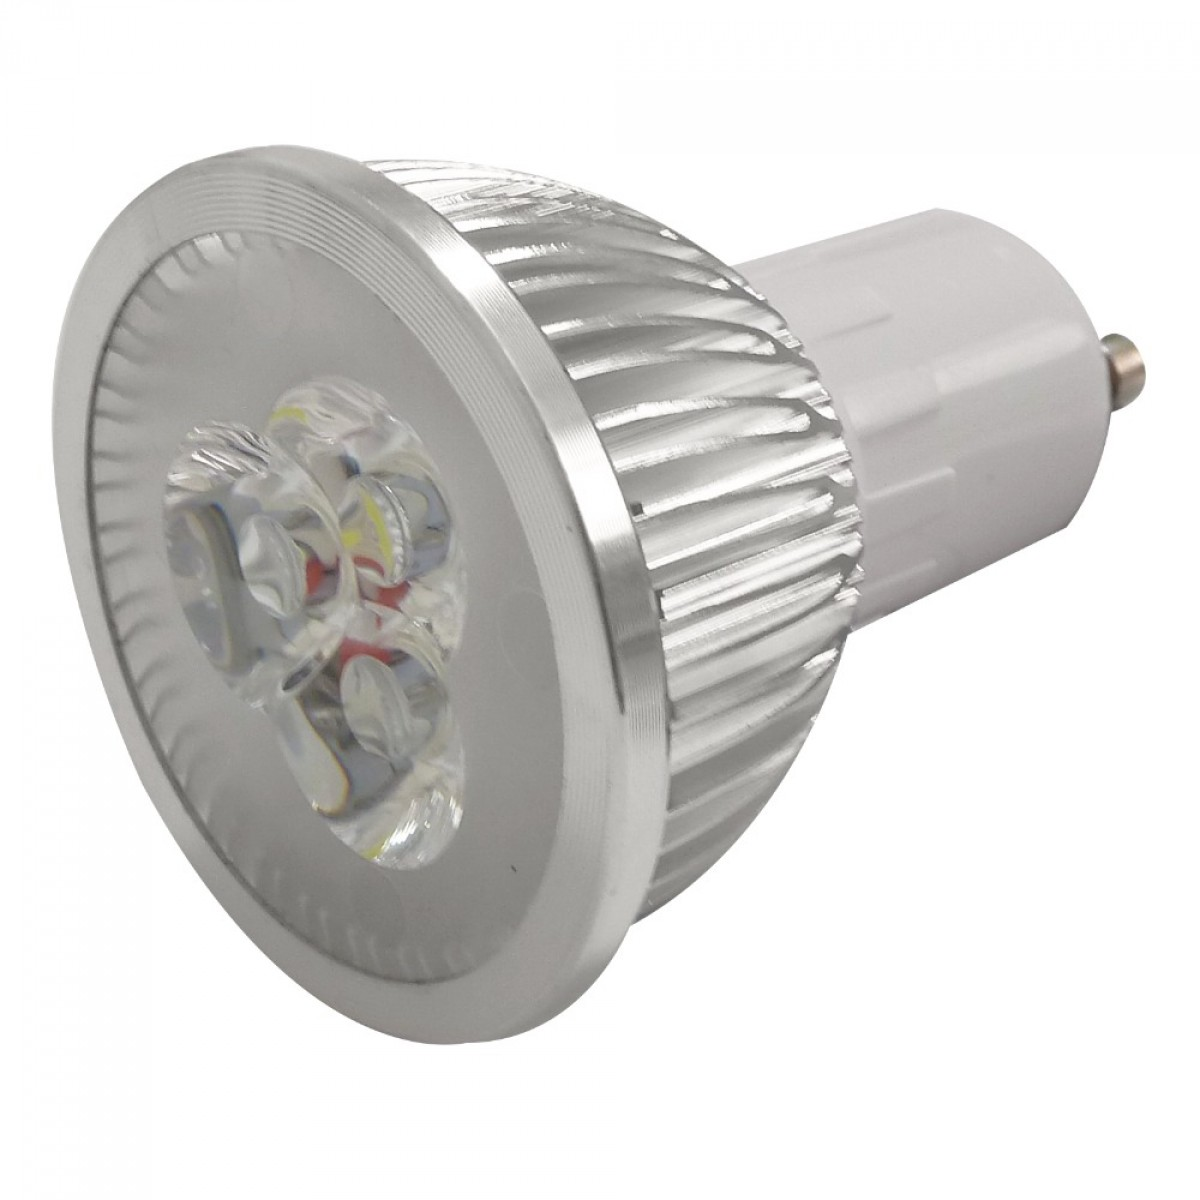 Lâmpada Dicroica LED 3W GU10 Bivolt - LinkLED